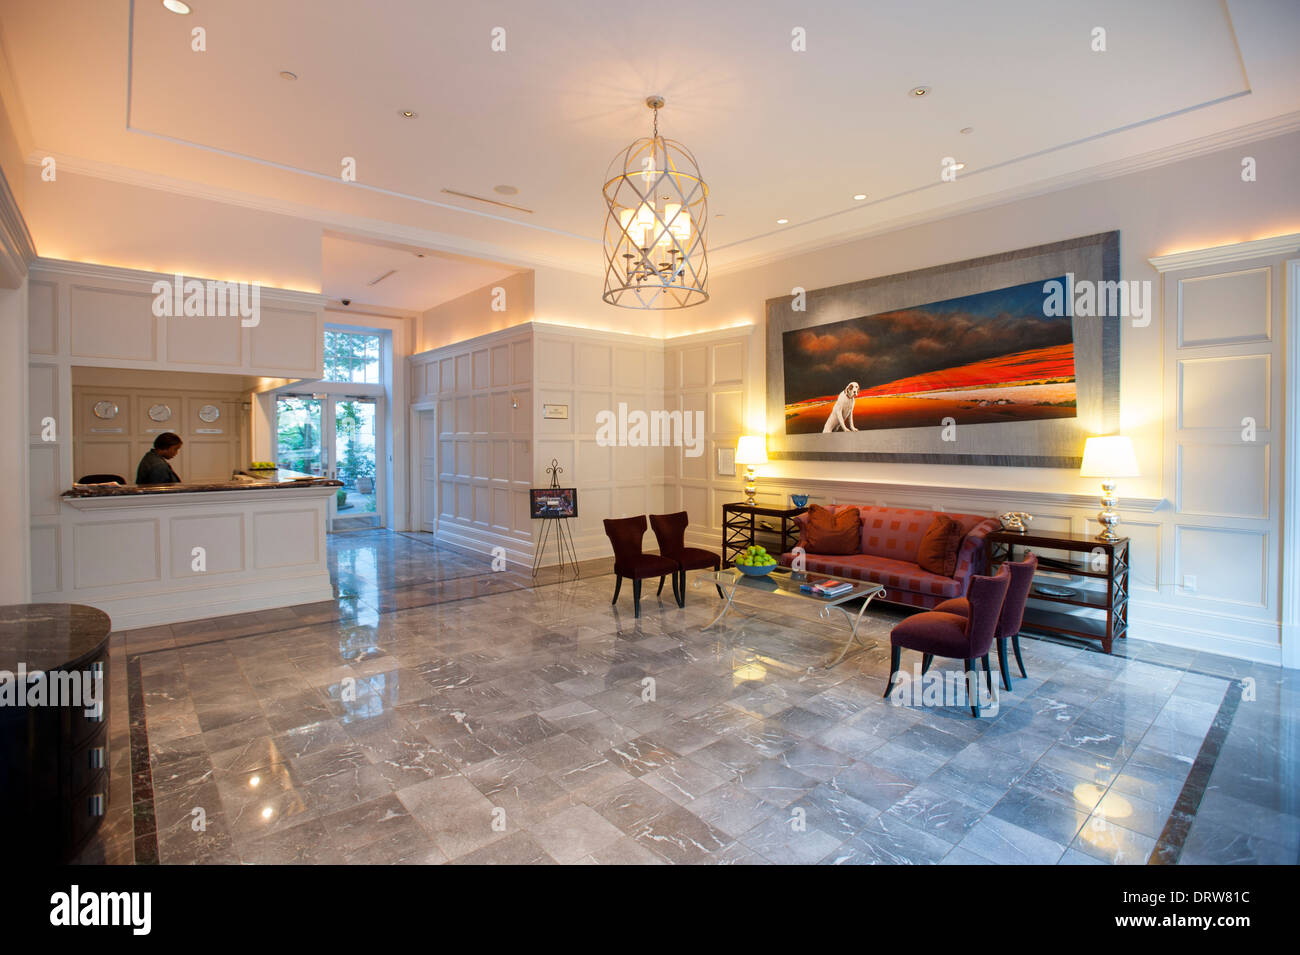 Stock photo usa mississippi ms miss greenwood luxury hotel the alluvian hotel owned by the viking range company upscale fine lobby